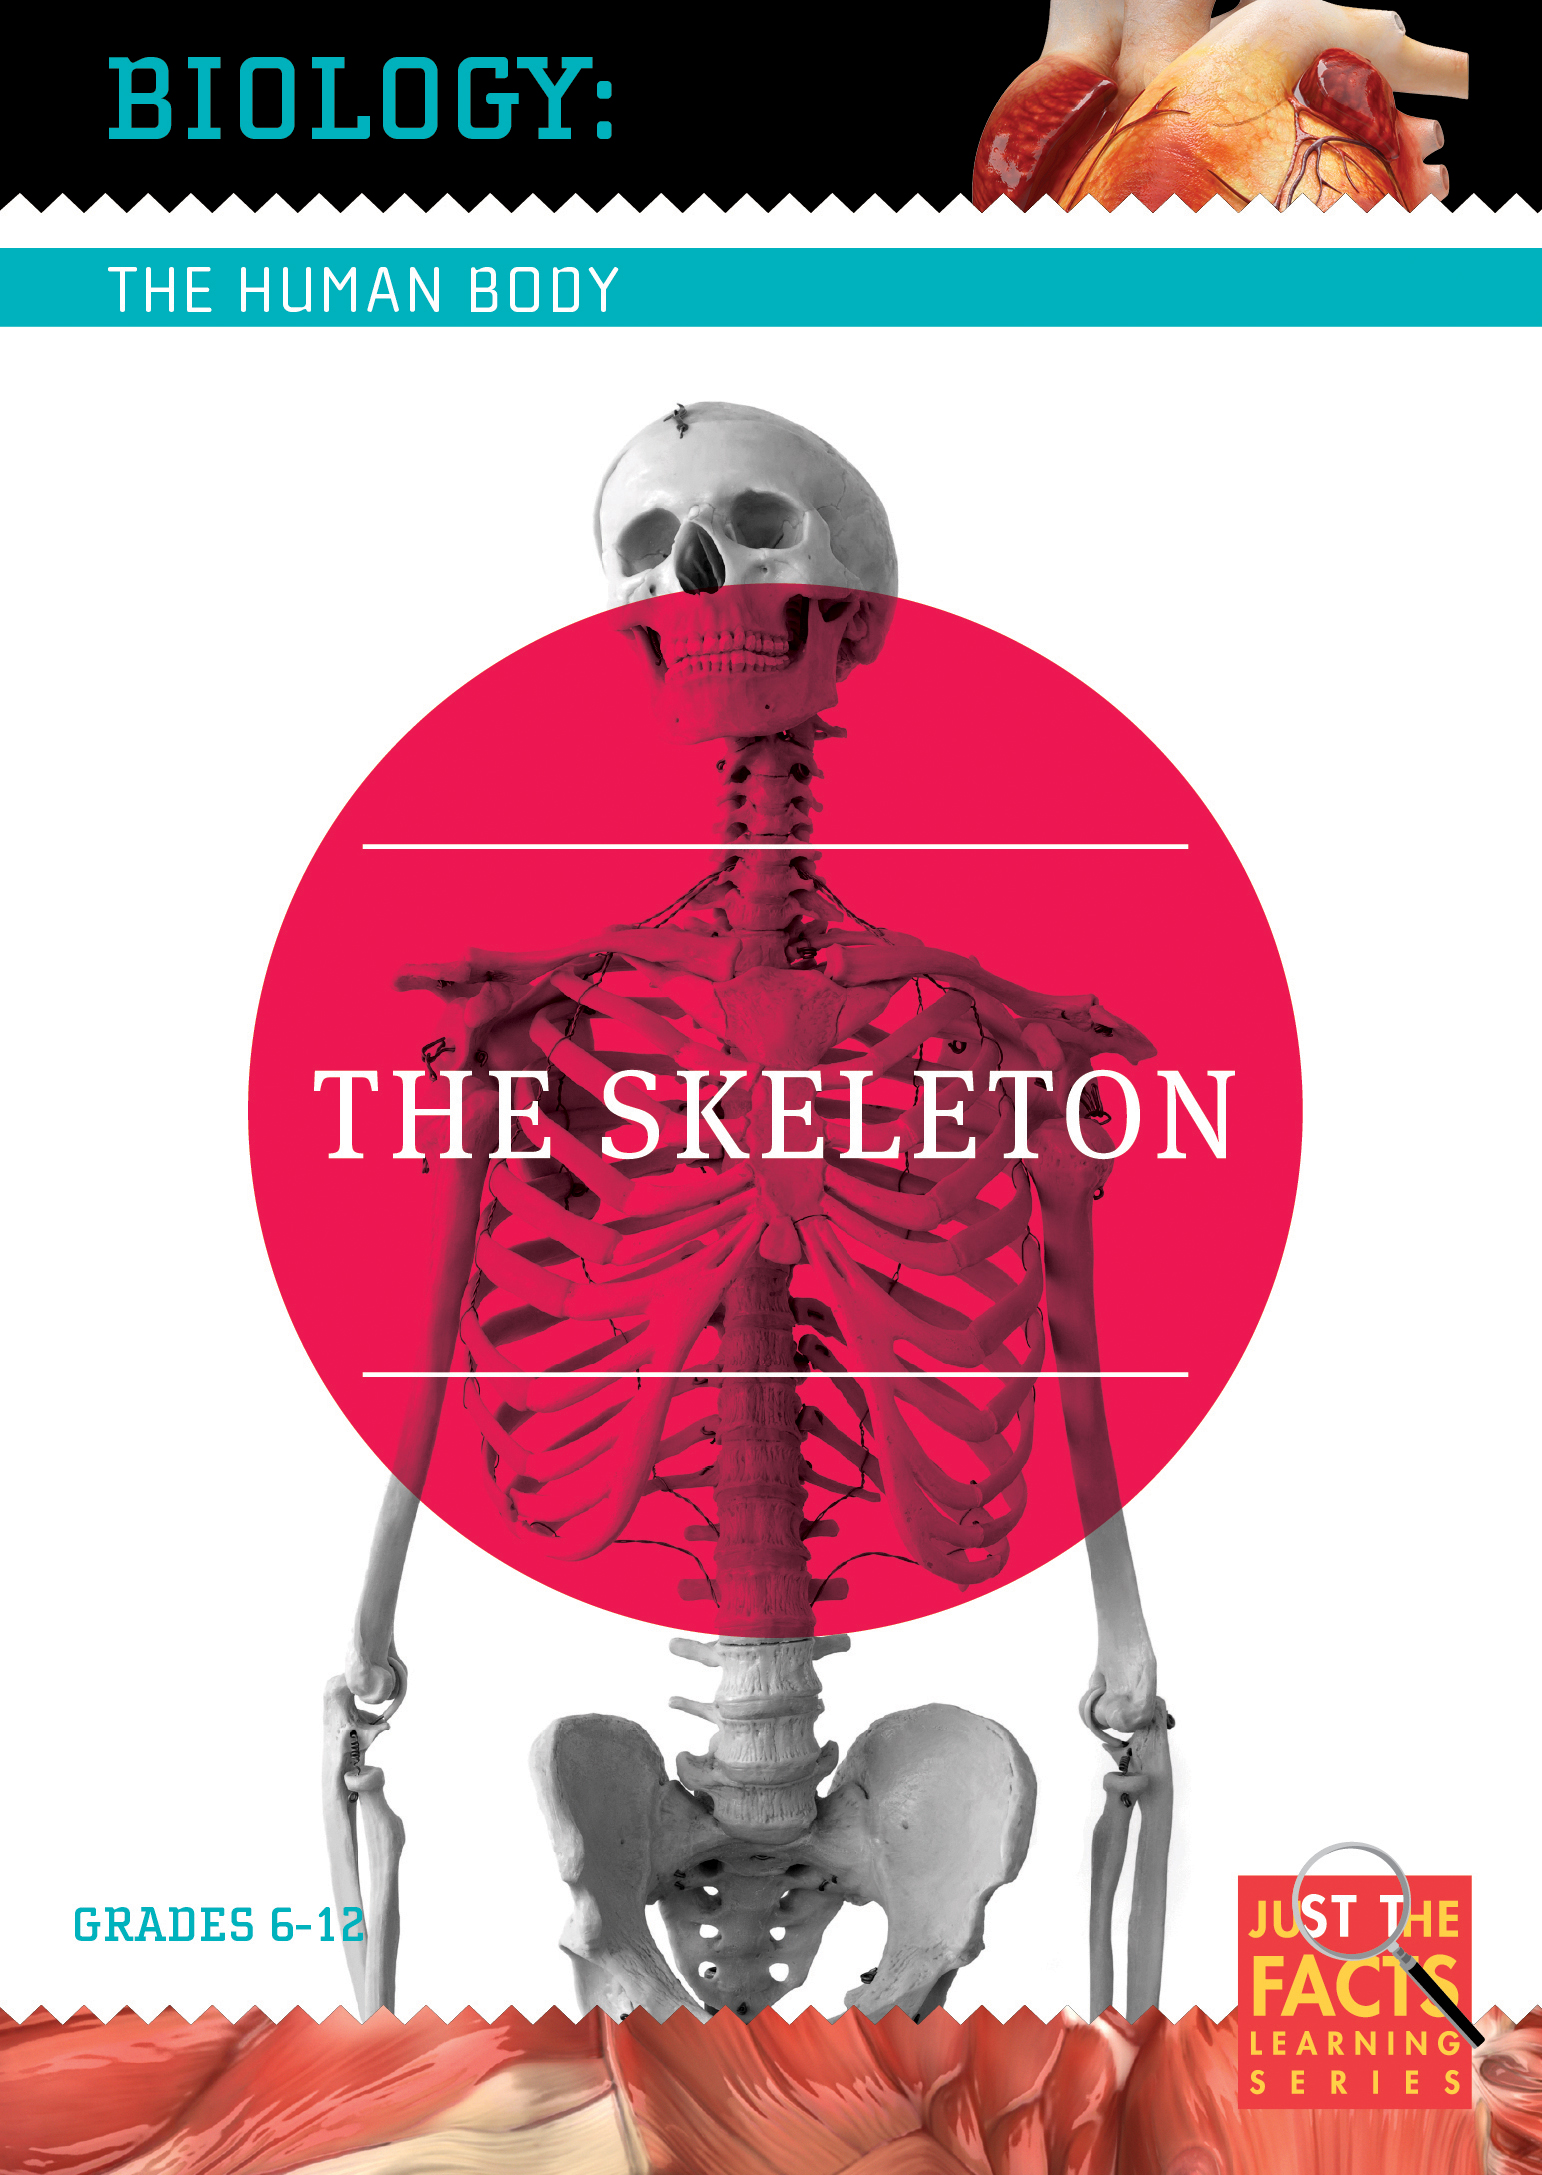 Biology of the Human Body: The Skeleton